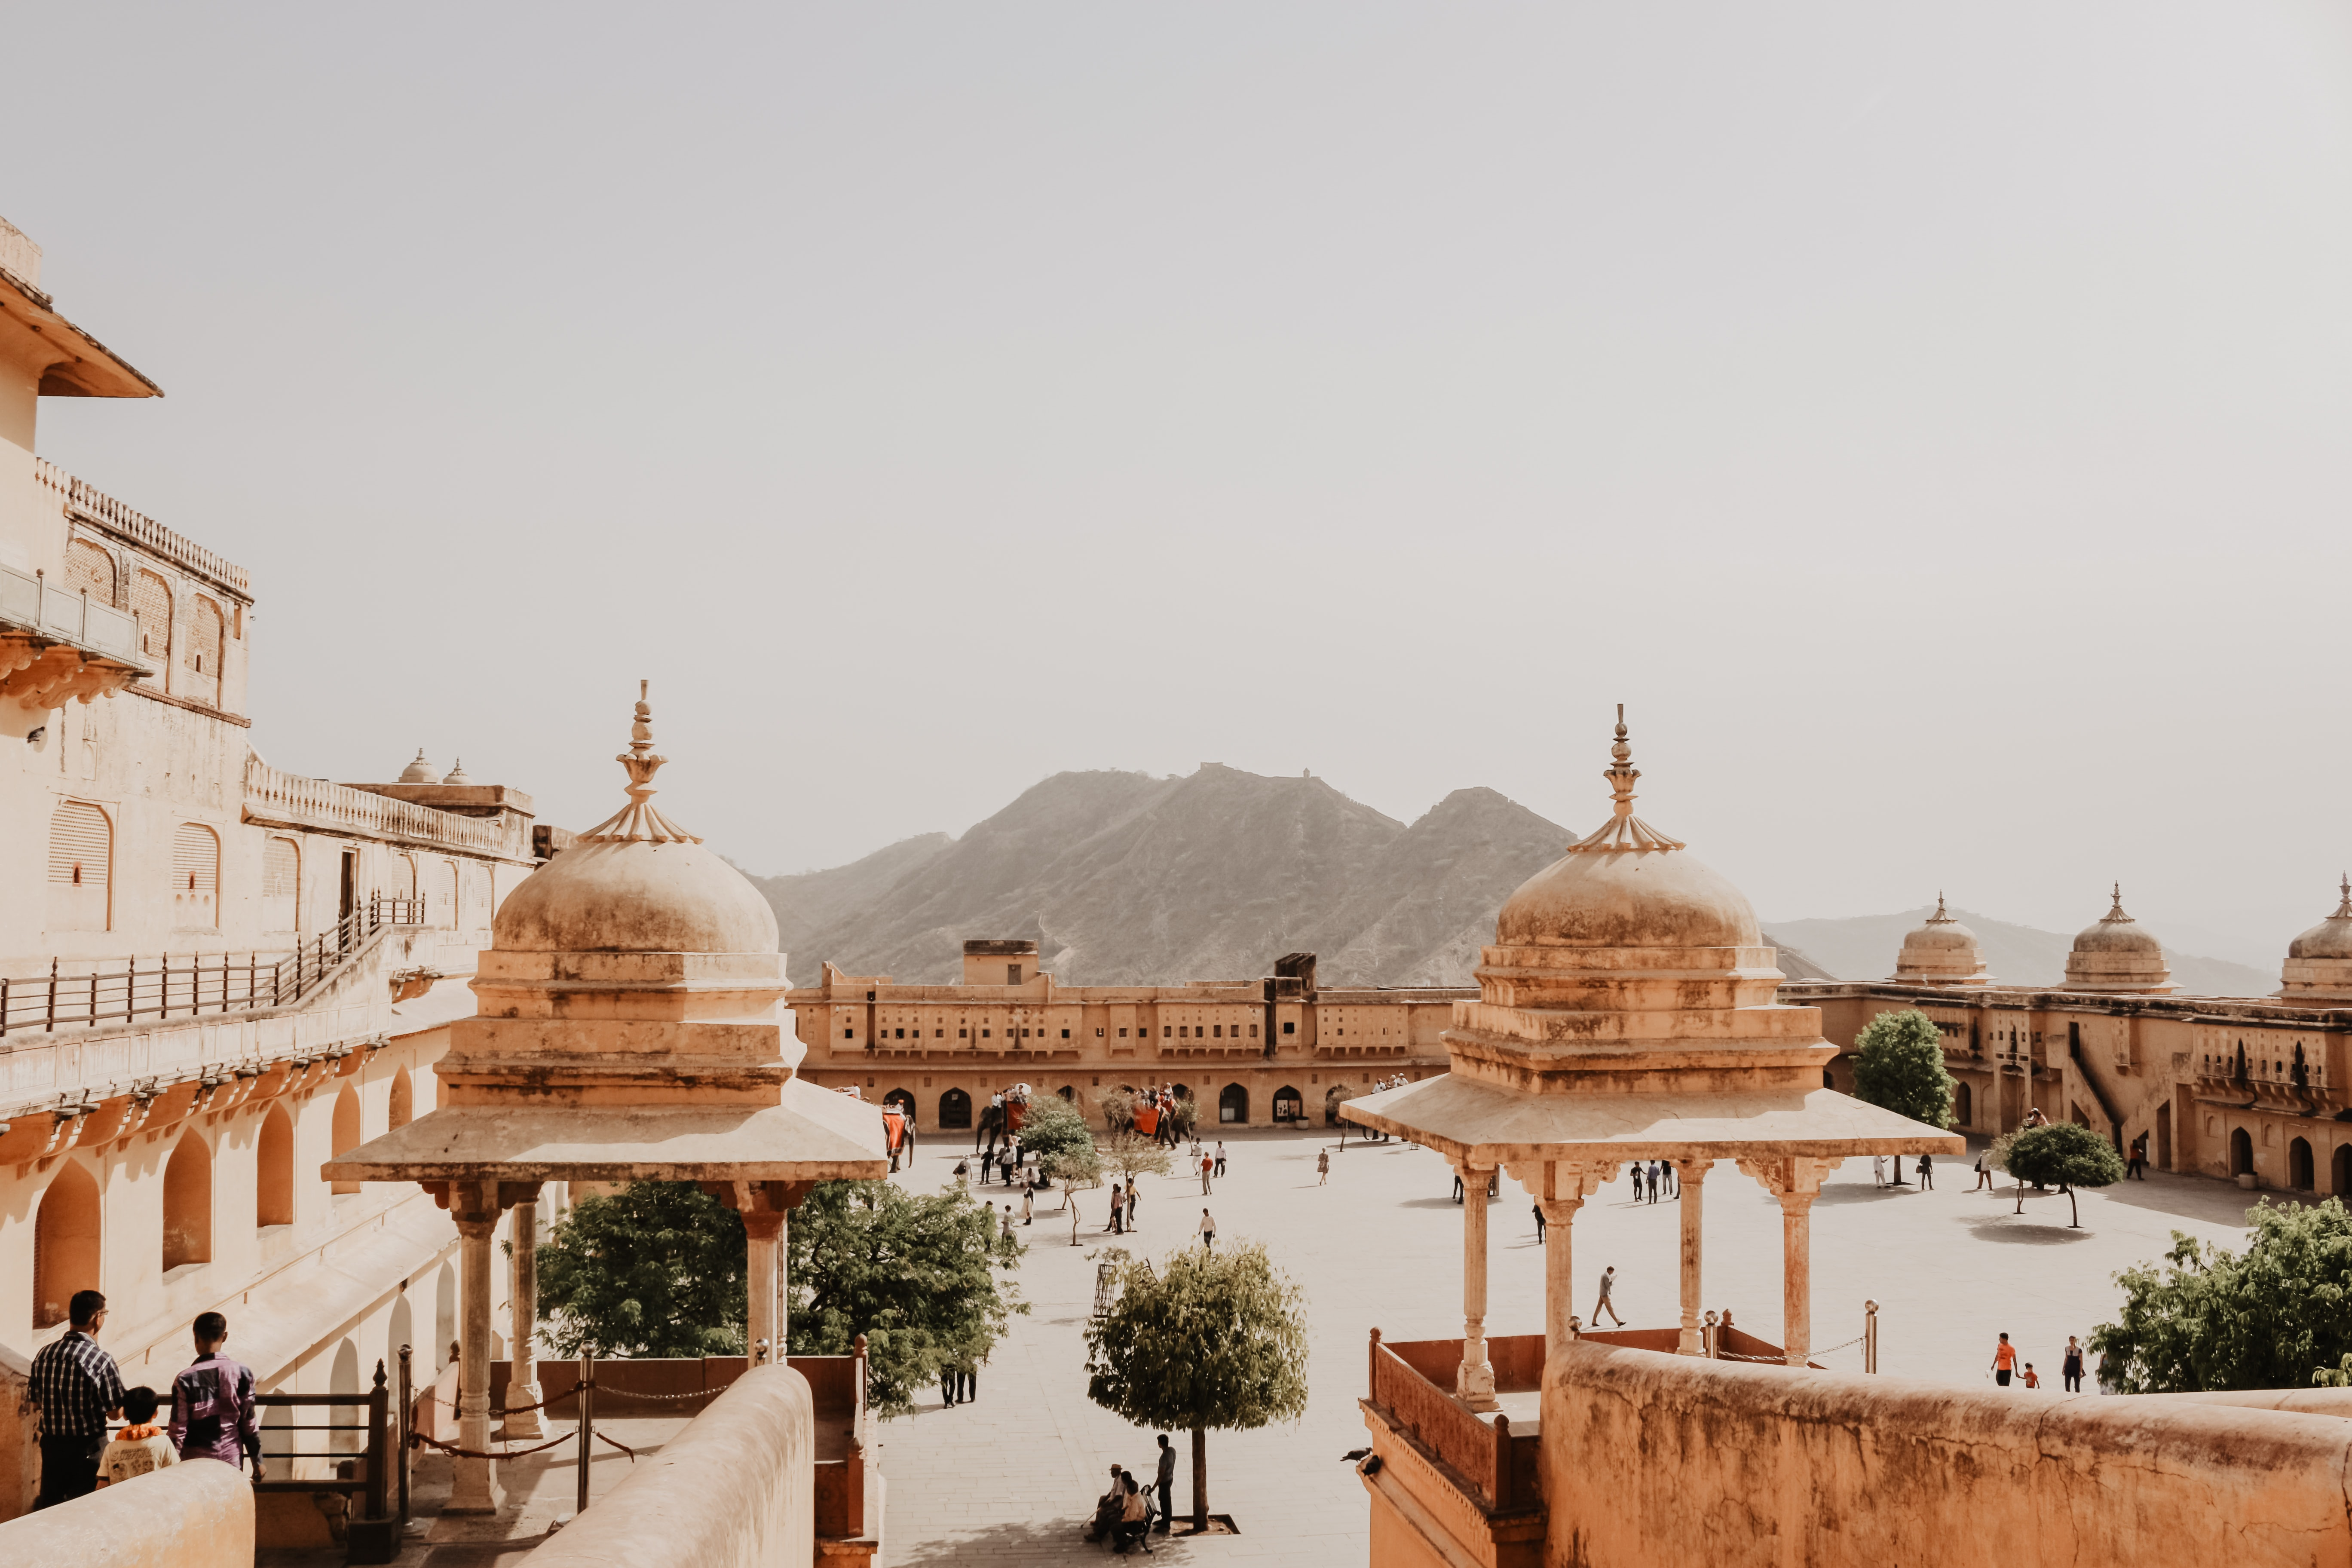 brown dome temples at daytime